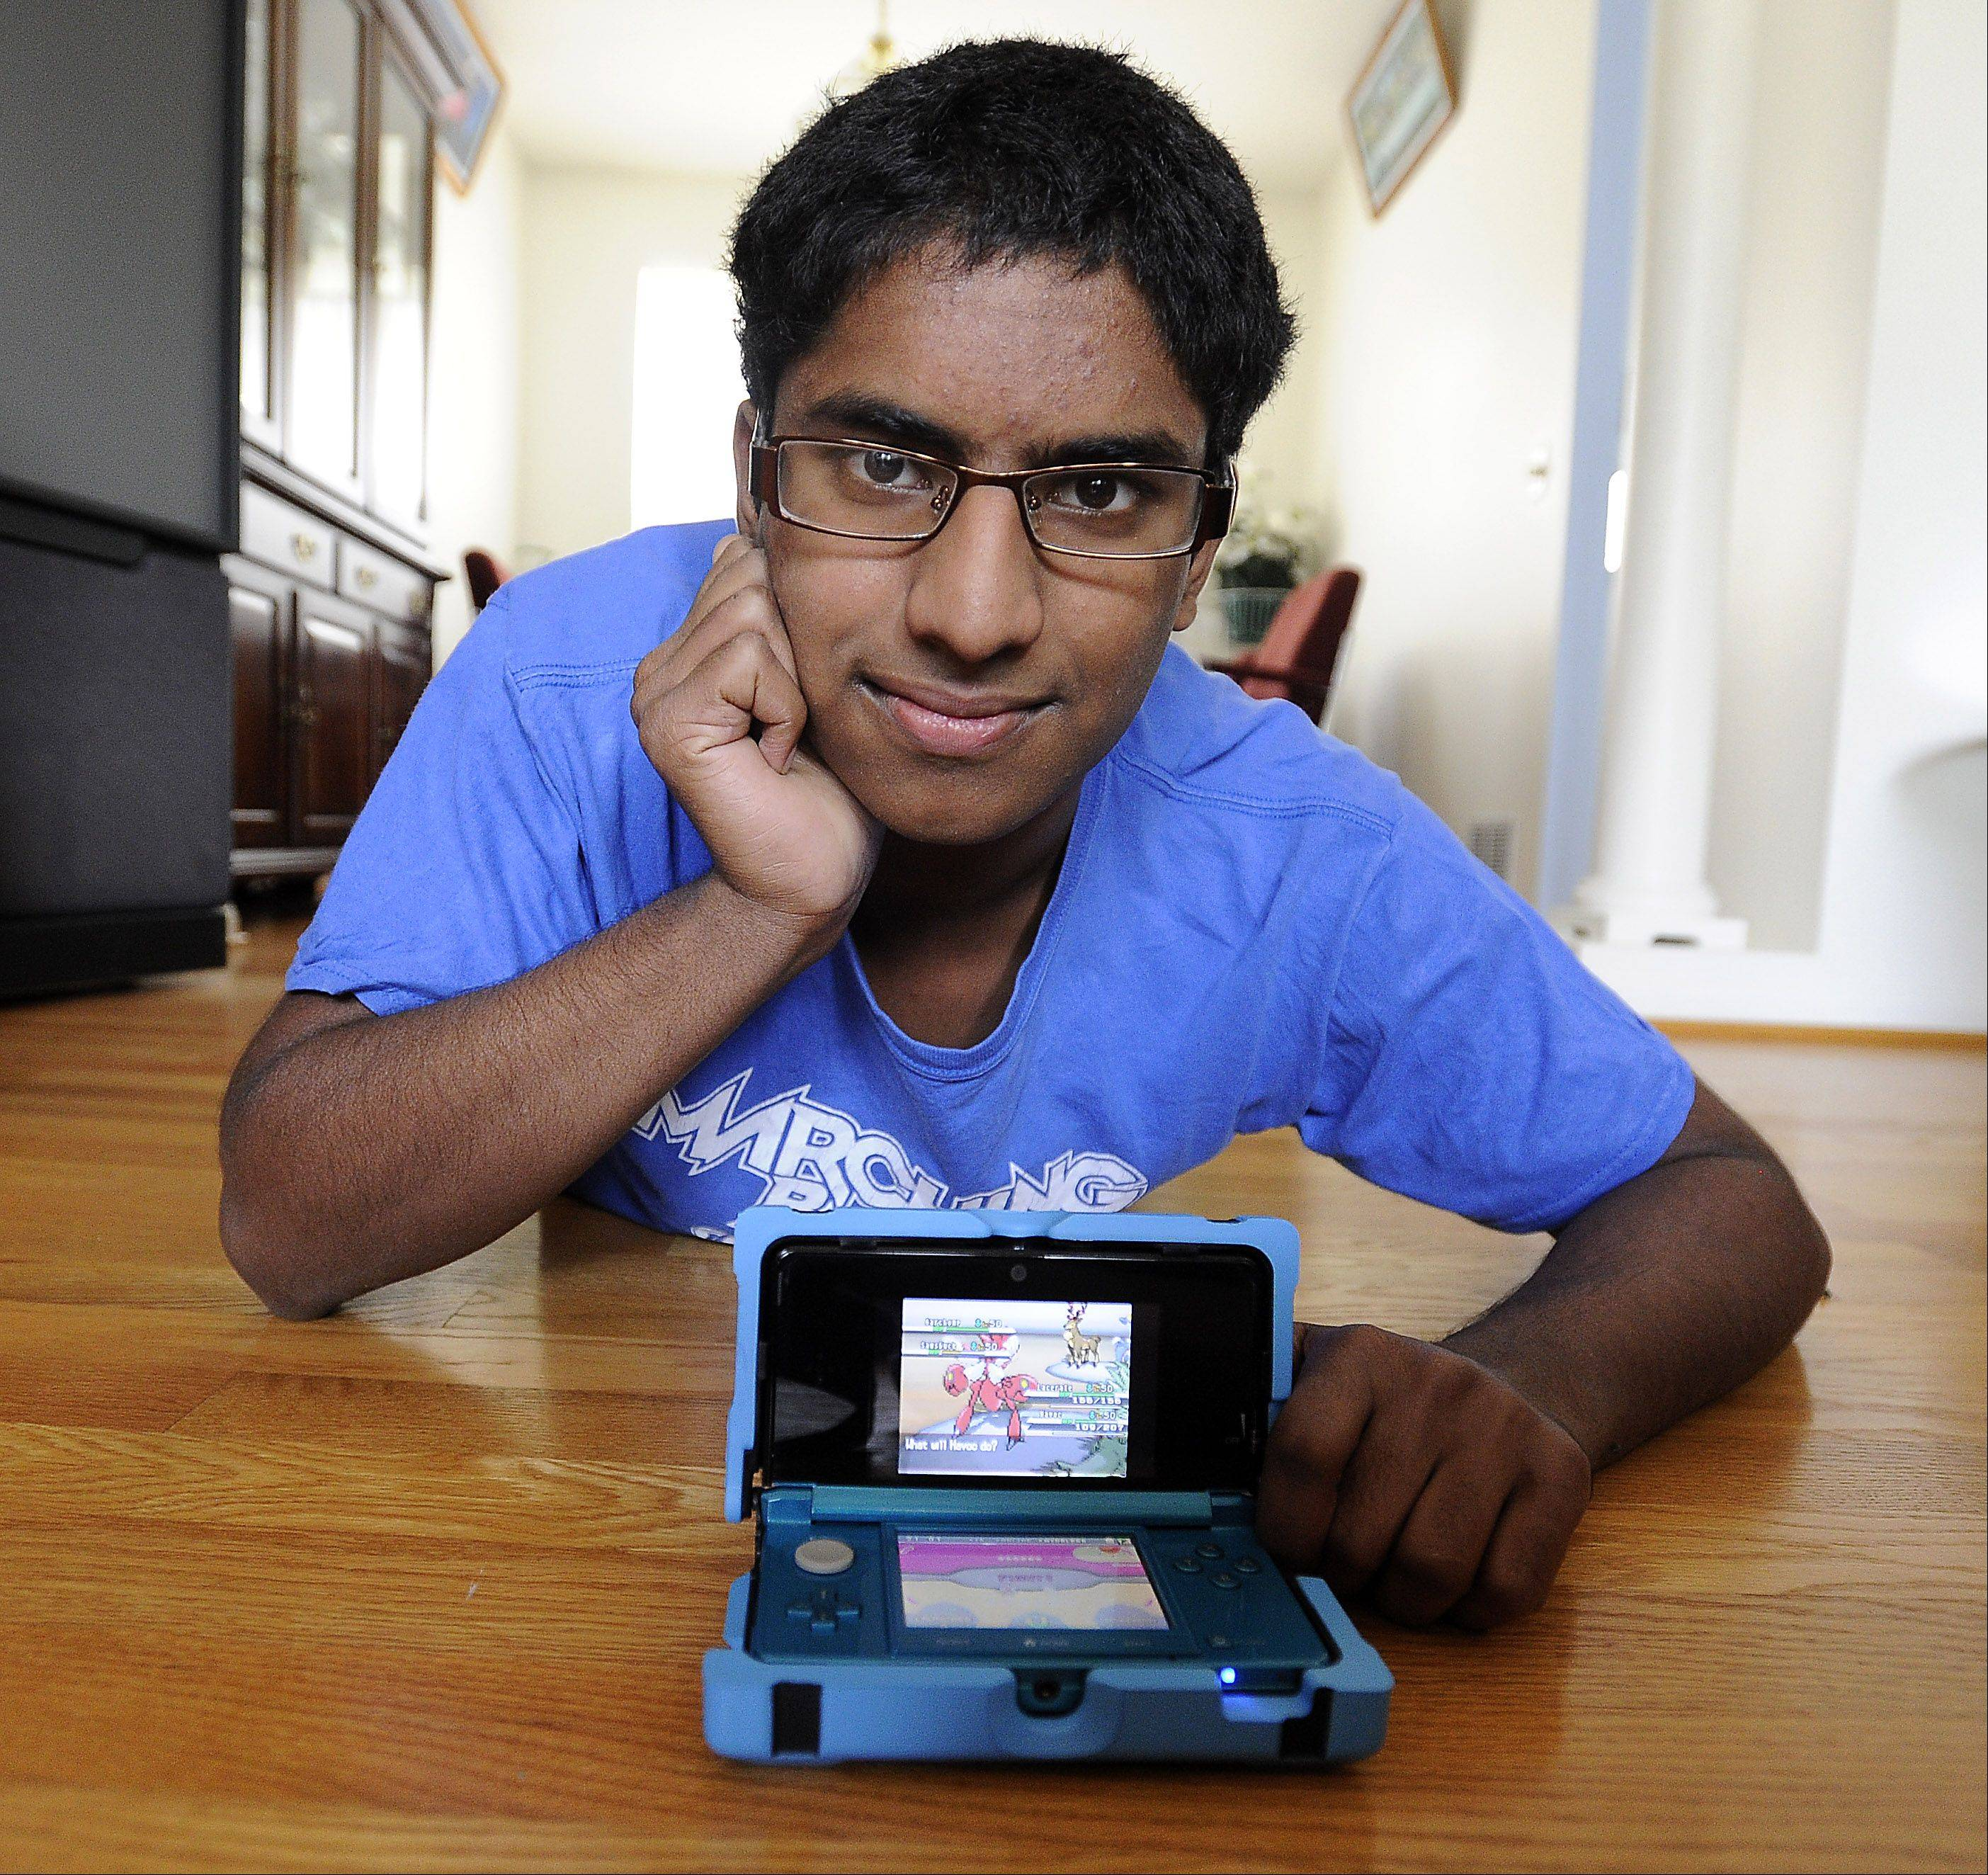 Manoj Sunny, 16, of Des Plaines is headed to Hawaii in August for the 2012 World Pokemon Championships. He earned a spot in the world championships by finishing fourth in the national finals earlier this month.